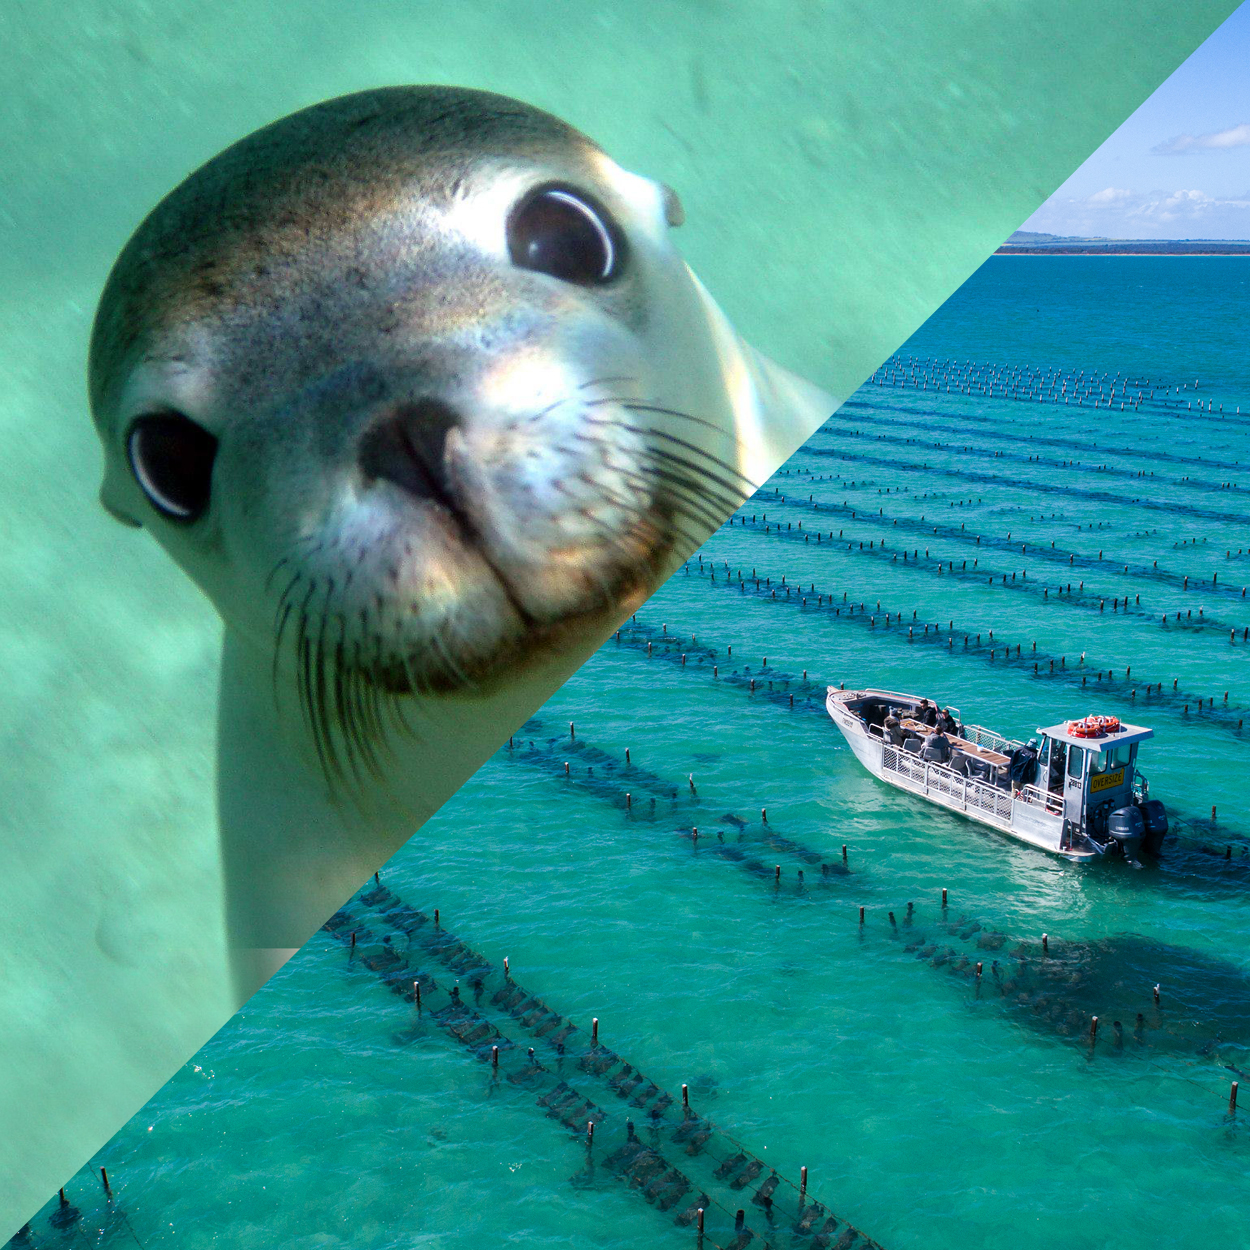 Swim with Sea Lions and Oyster Farm Boat Tour - Full Day Tour